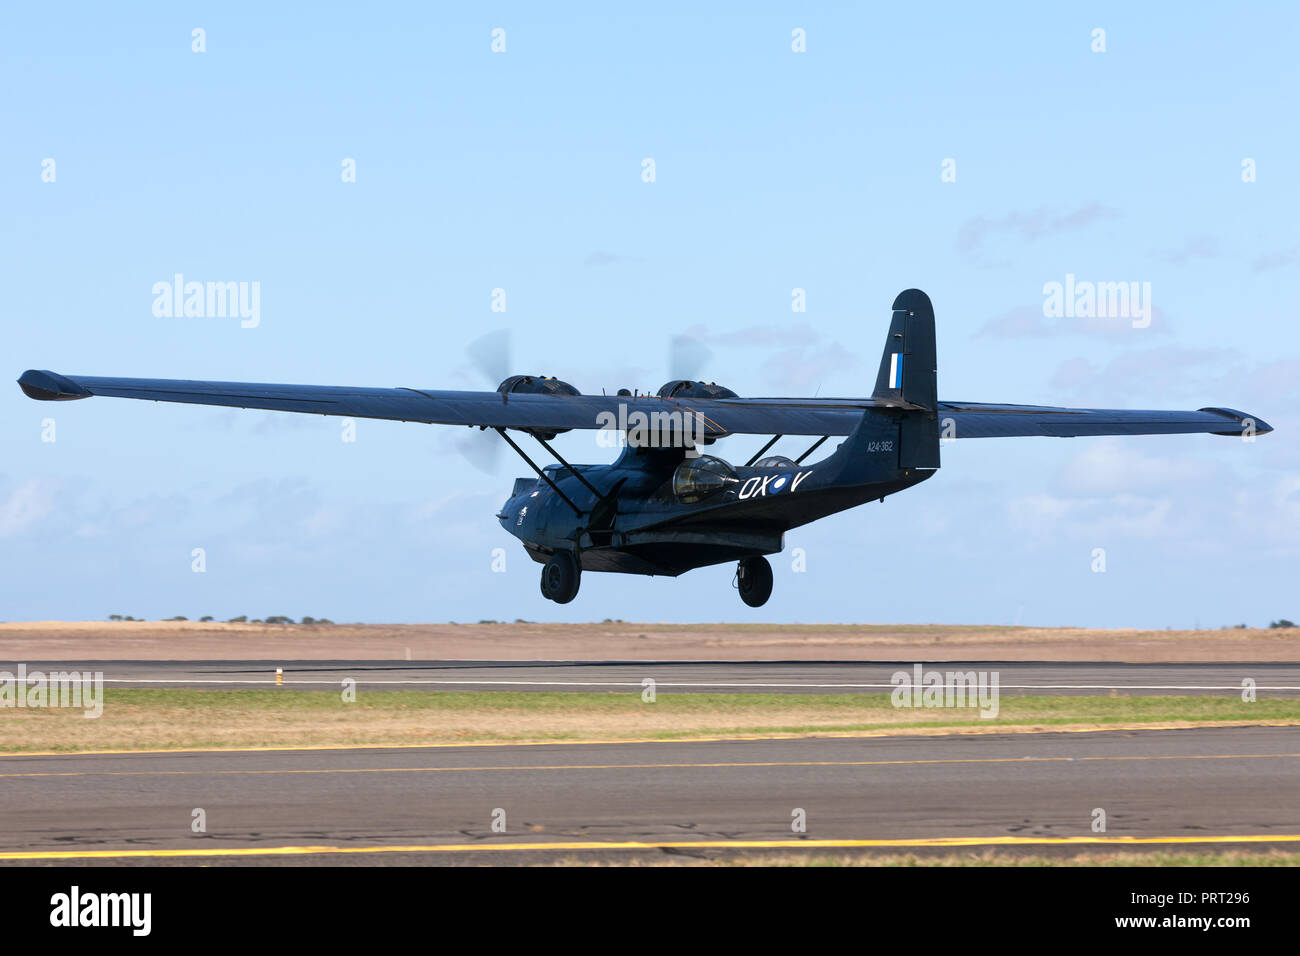 Consolidated PBY Catalina Flying boat VH-PBZ operated by the Historical Aircraft Restoration Society (HARS) wearing the famous ÔBlack CatsÕ livery fro - Stock Image